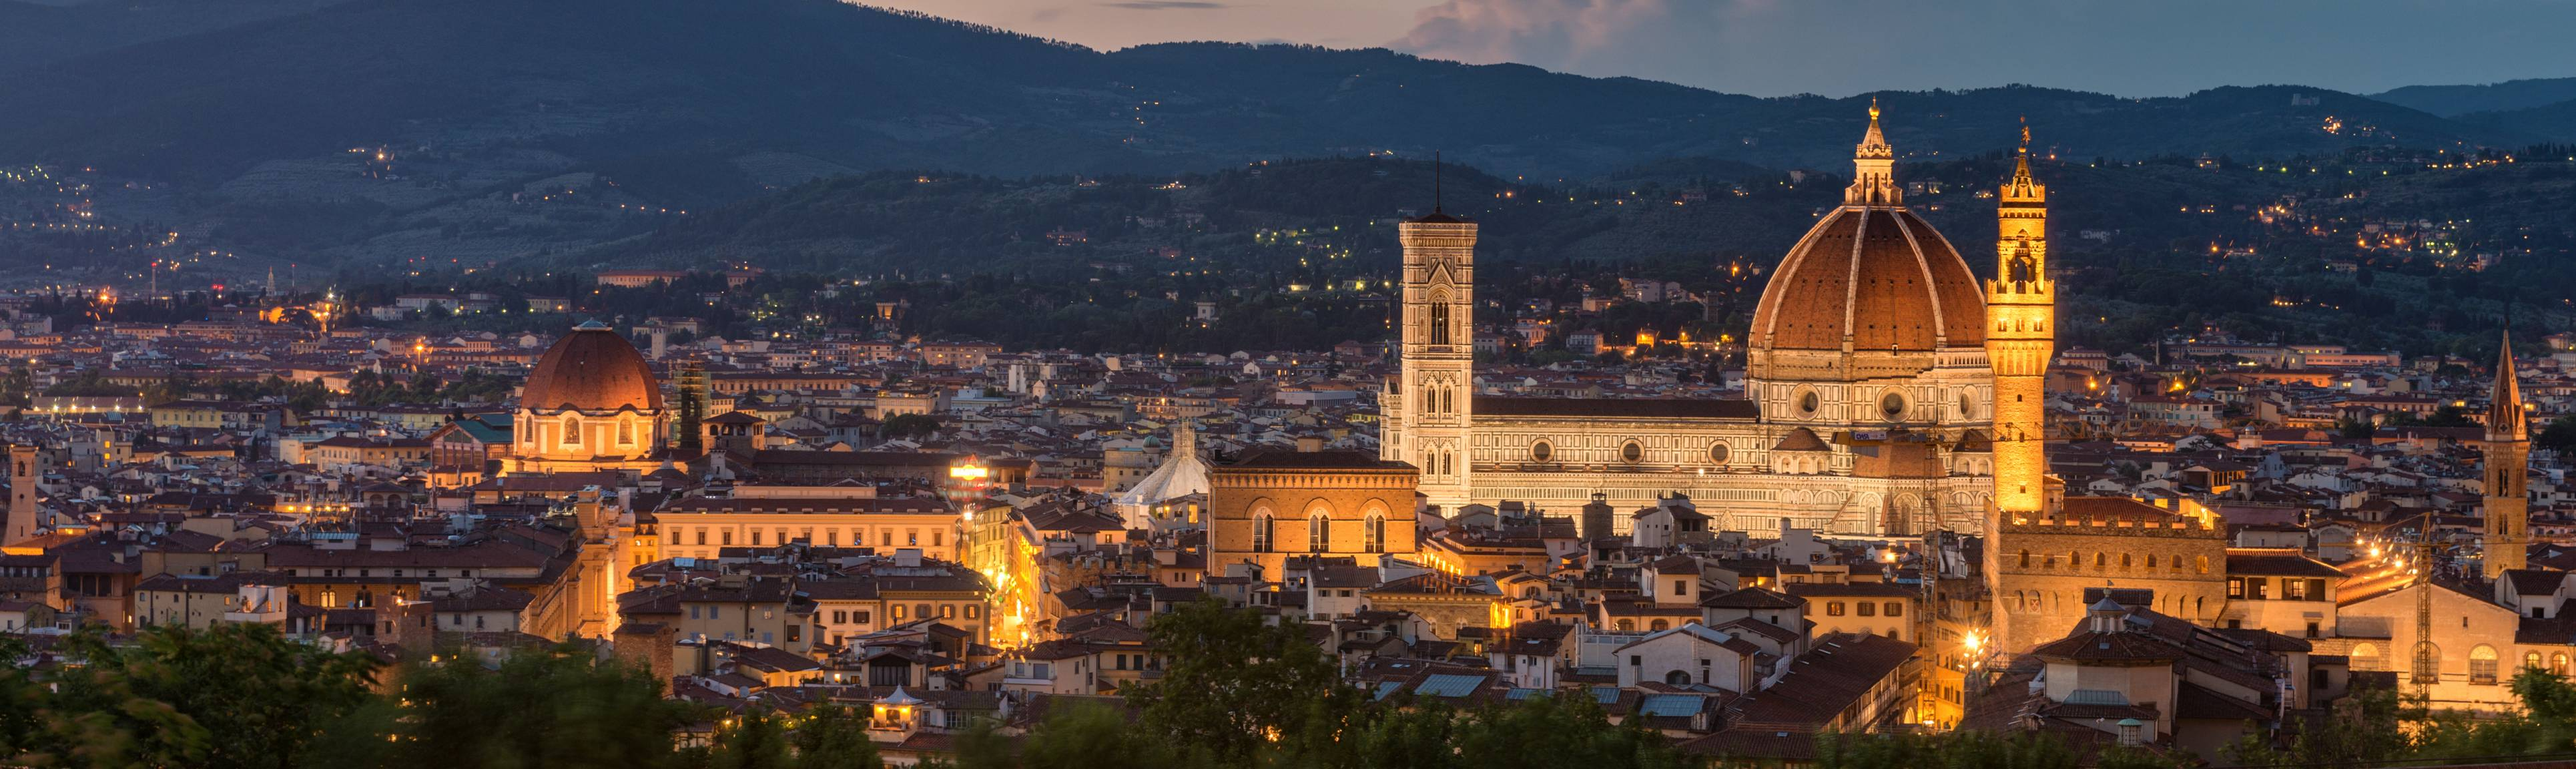 Illuminated view of city of Florence at night